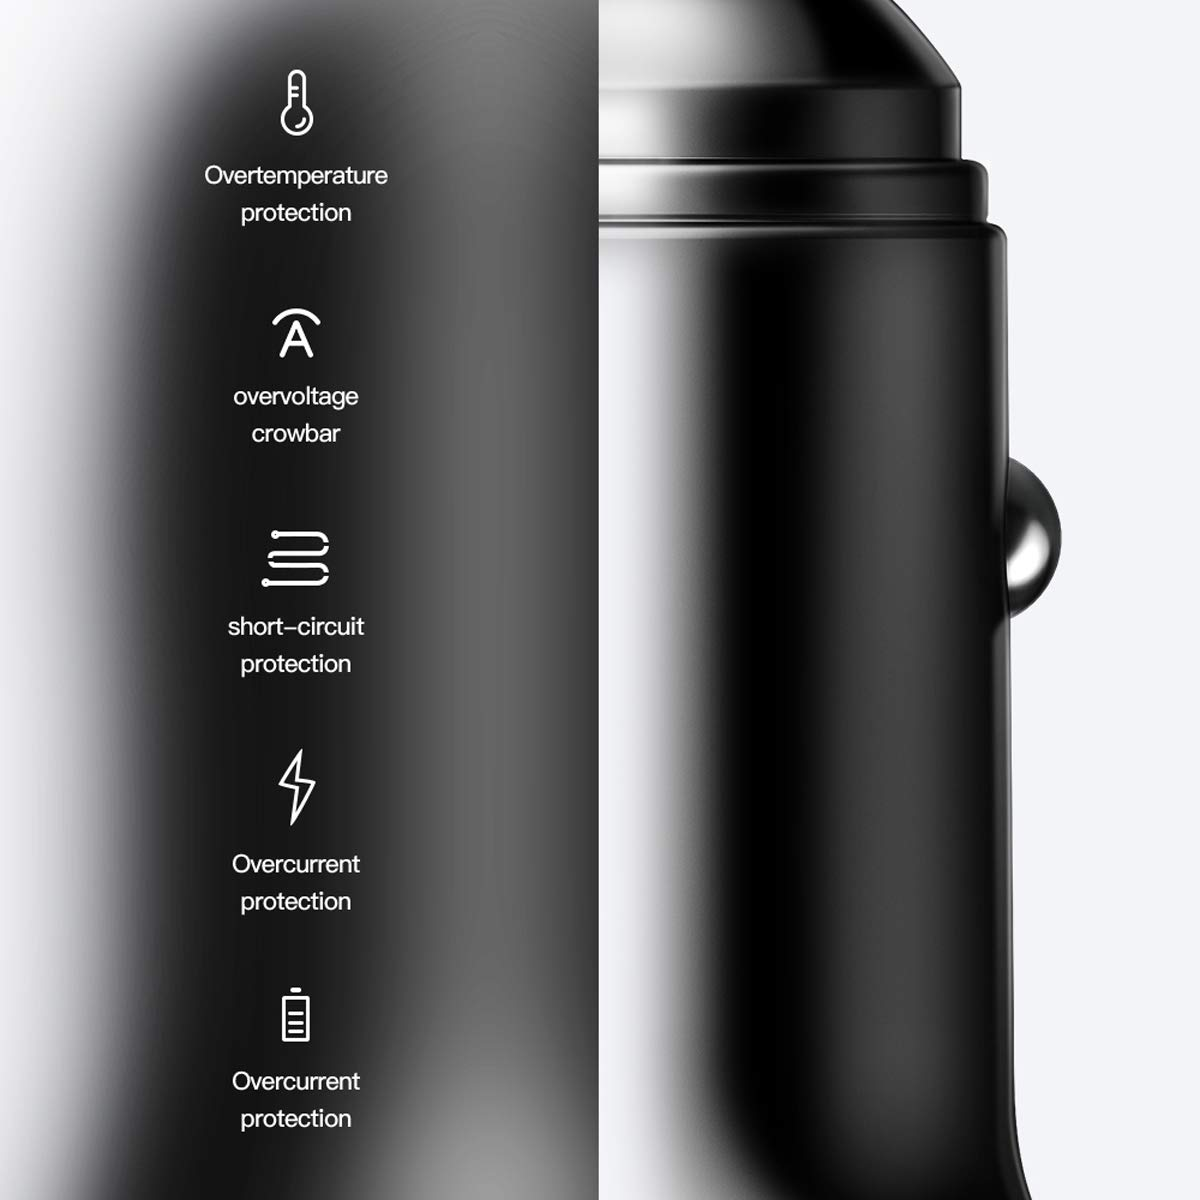 Samsung Galaxy Note8 and More Silver USB Car Charger Essager 24W 4.8A Metal Dual Car Adapter for iPhone Xs//Max//XR//X iPad Air//Pro